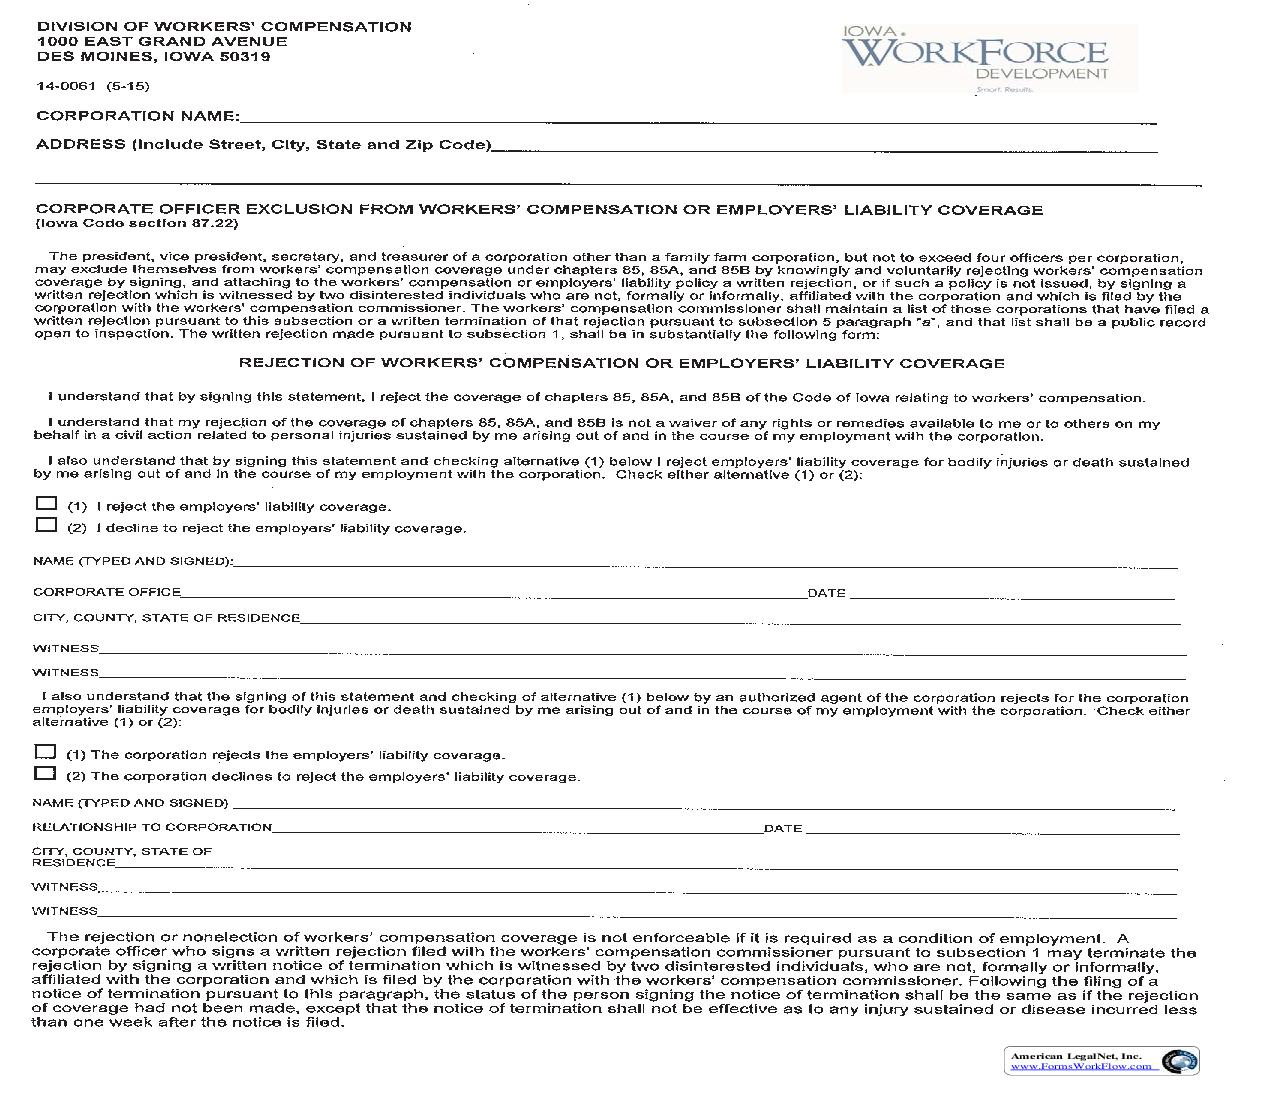 Corporate Officer Exclusion From Workers Compensation Or Employers Liability Coverage {14-0061} | Pdf Fpdf Doc Docx | Iowa